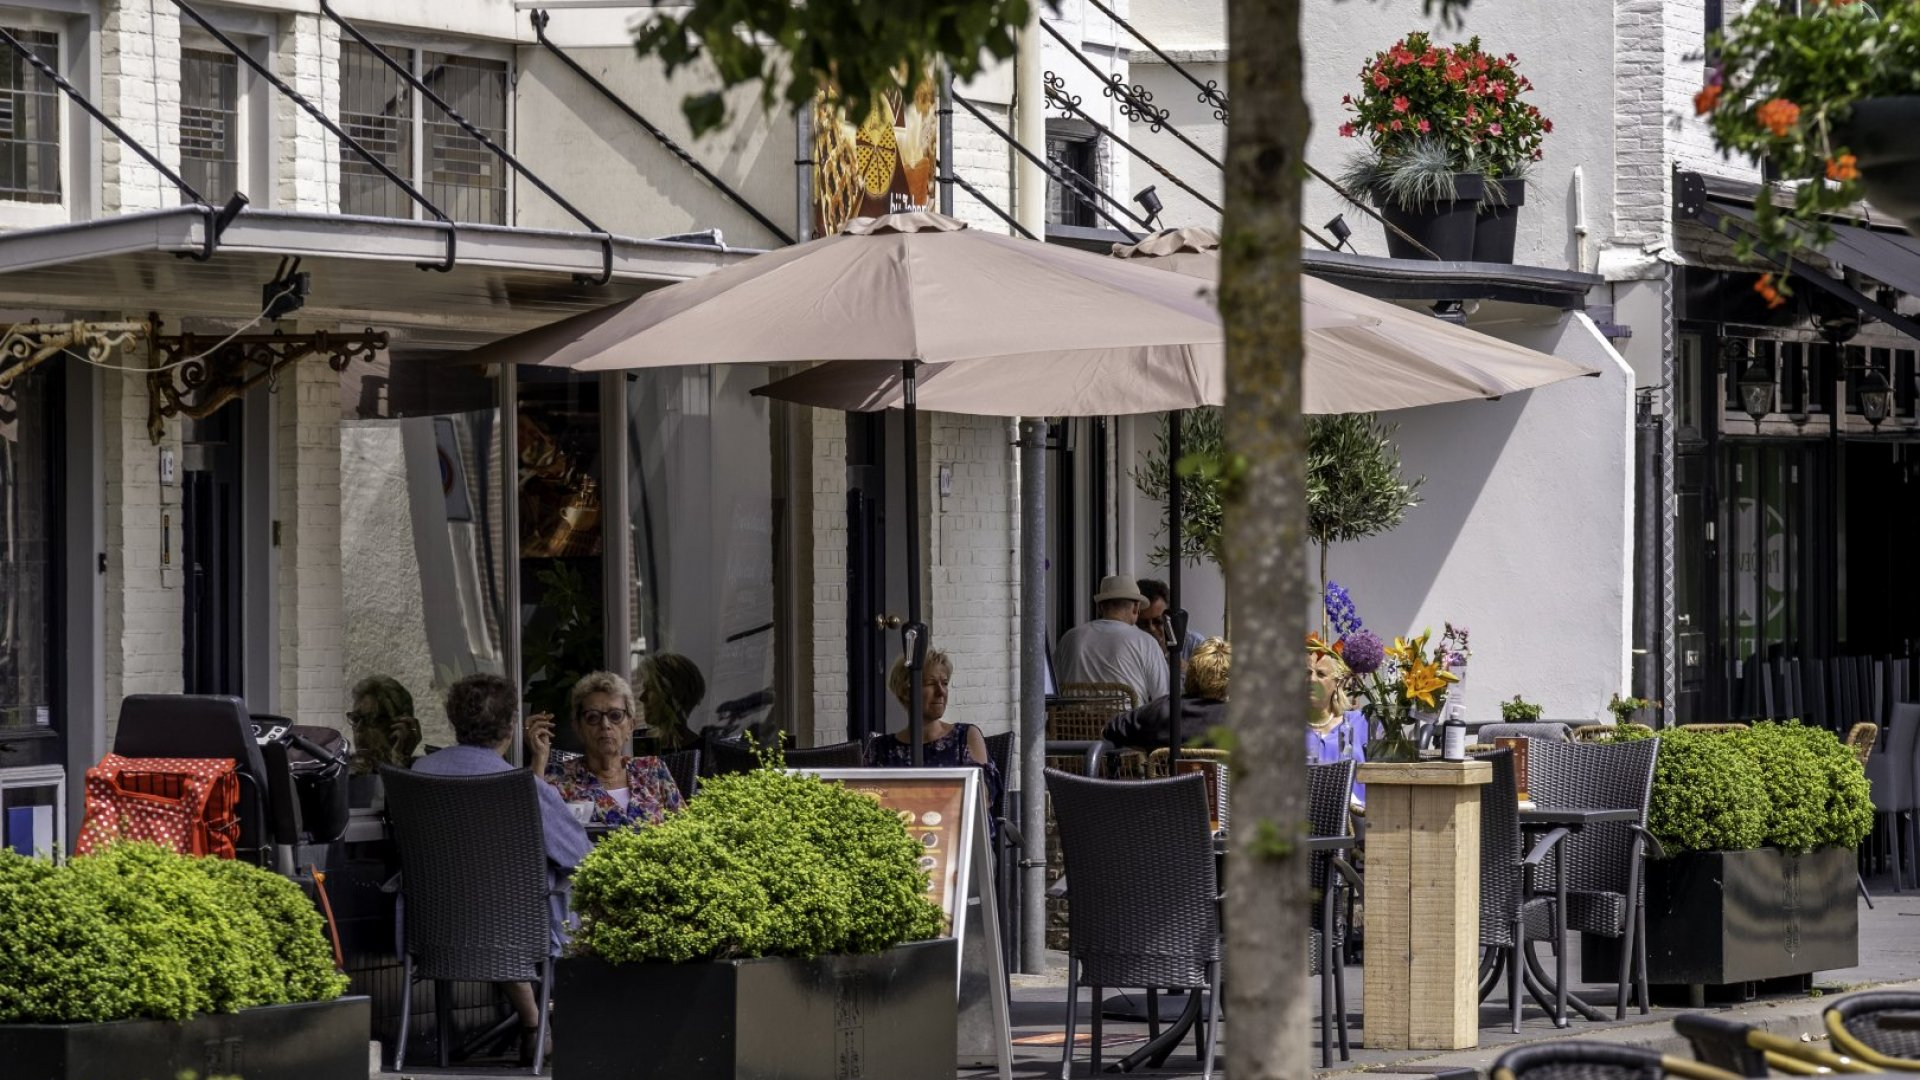 Restaurants in Vught